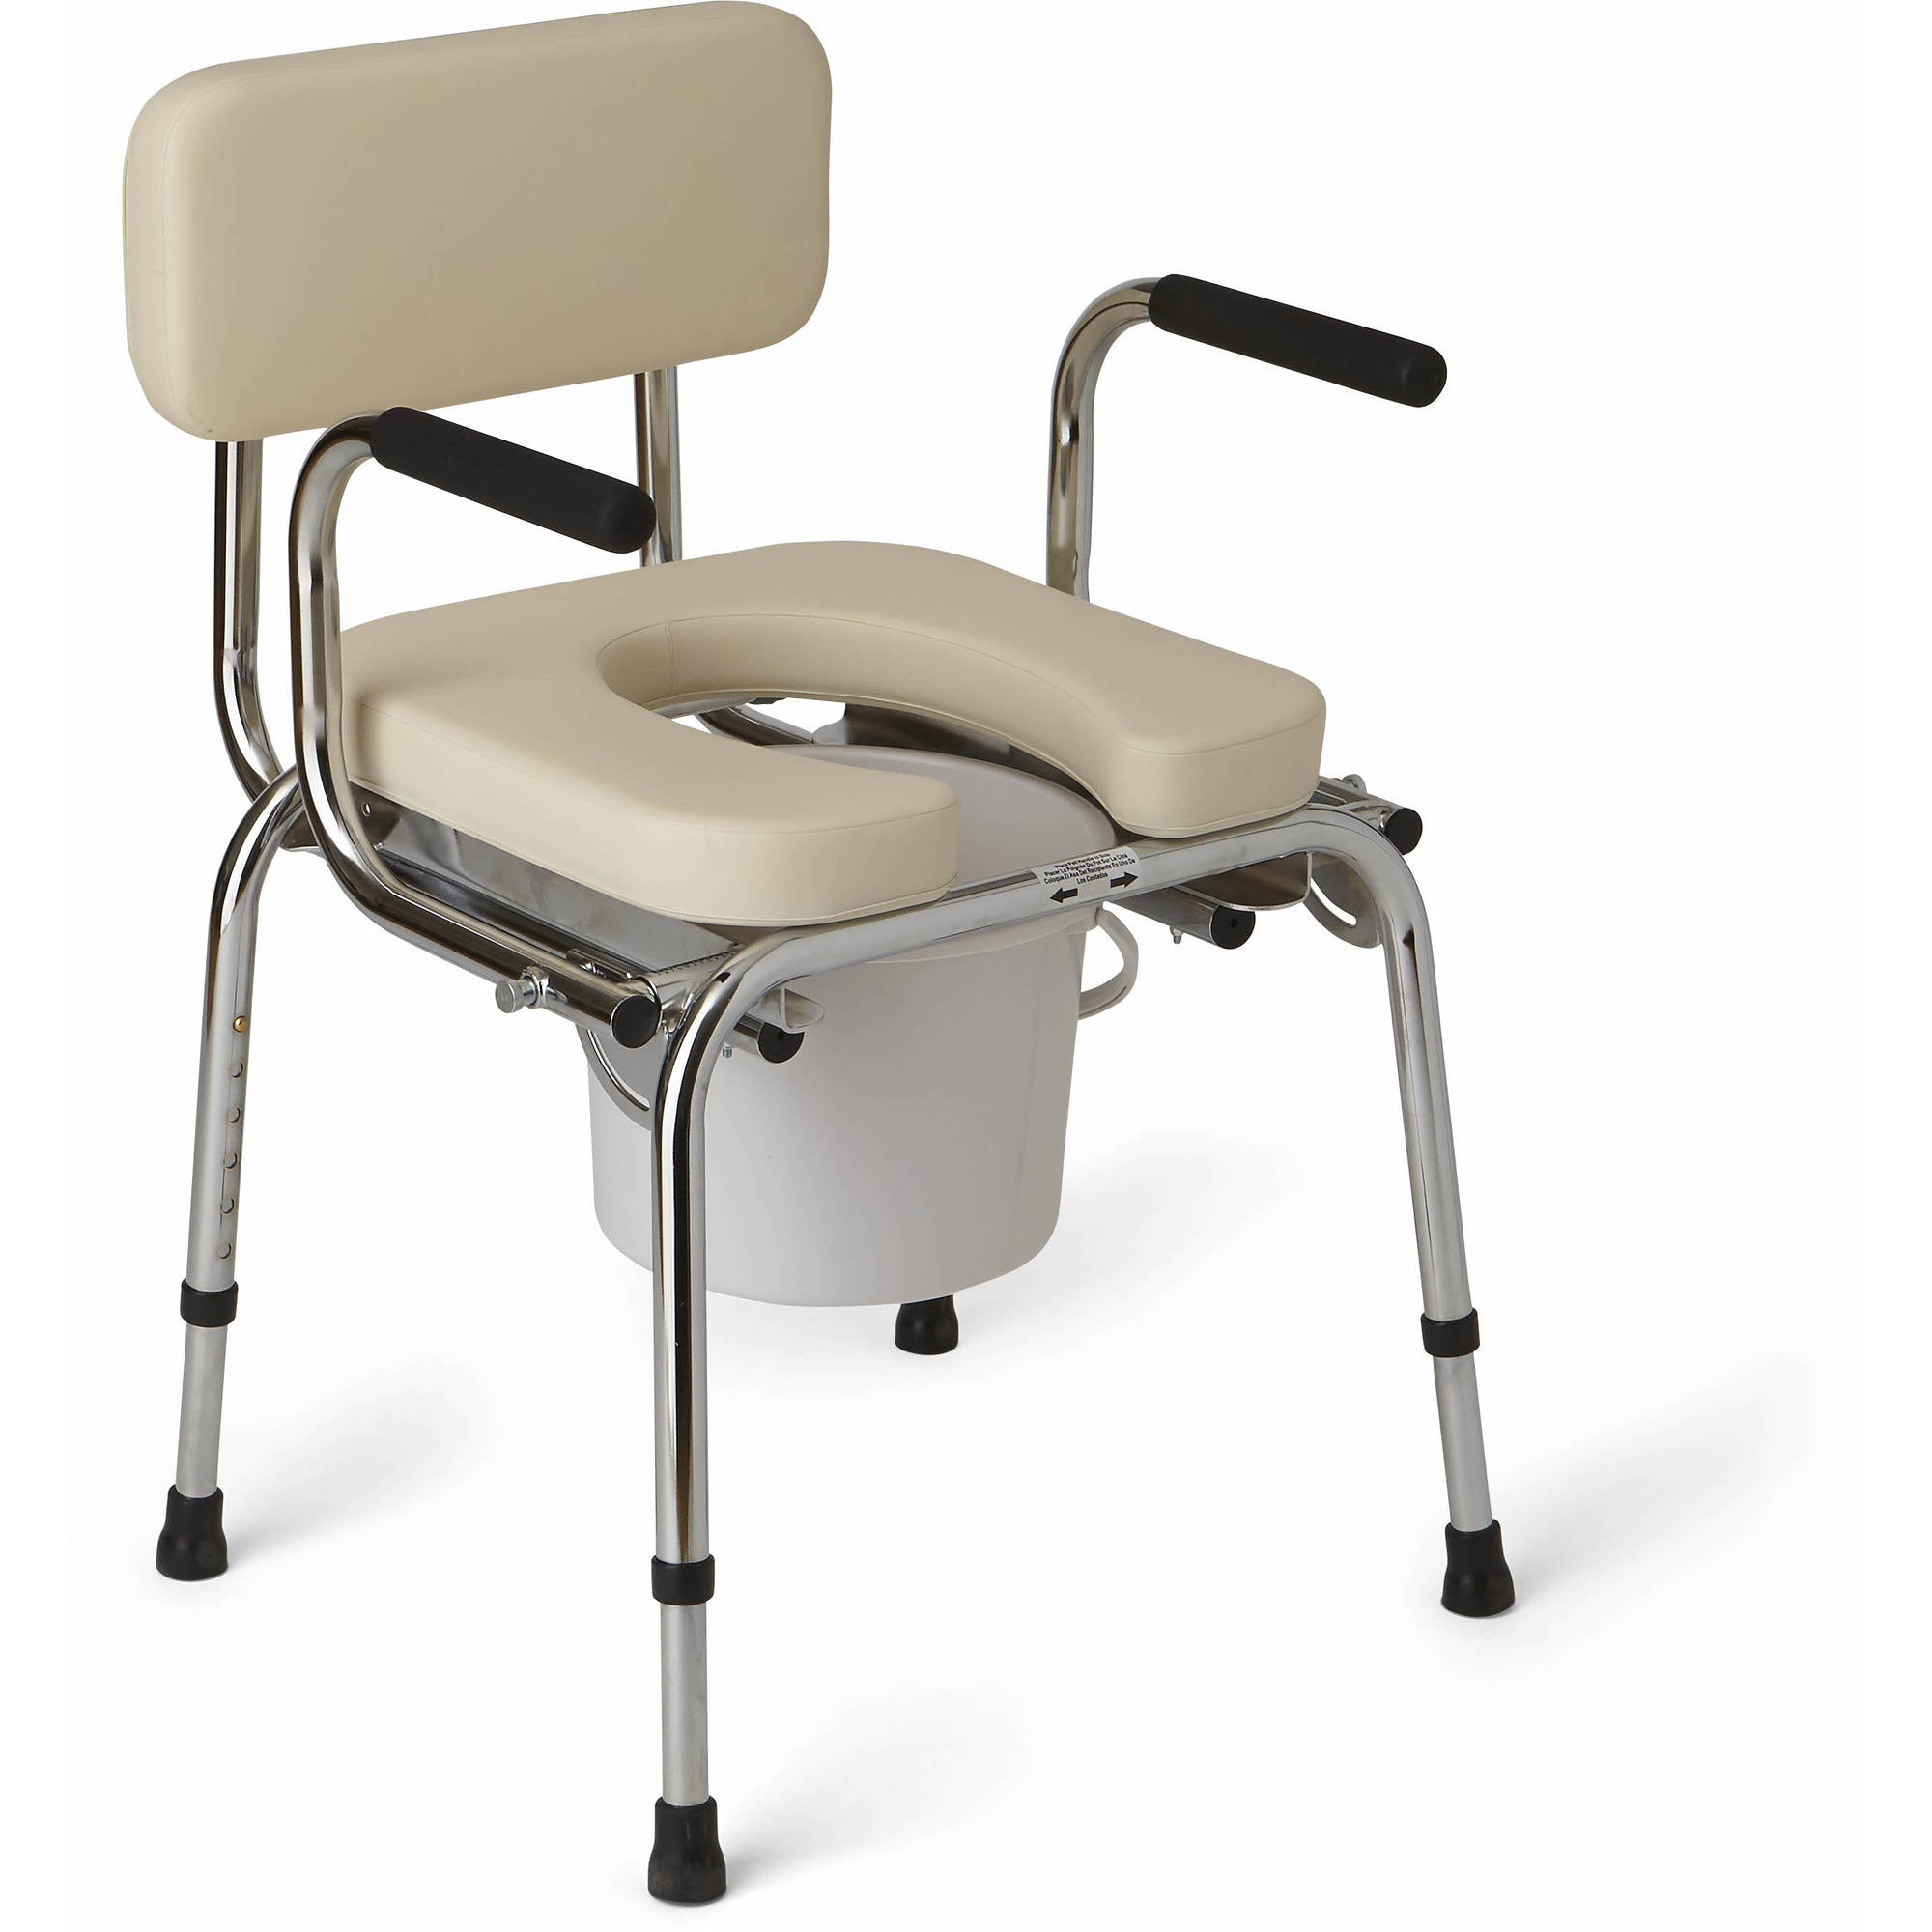 Medline Drop-Arm Padded Commode, 350 lb Weight Capacity